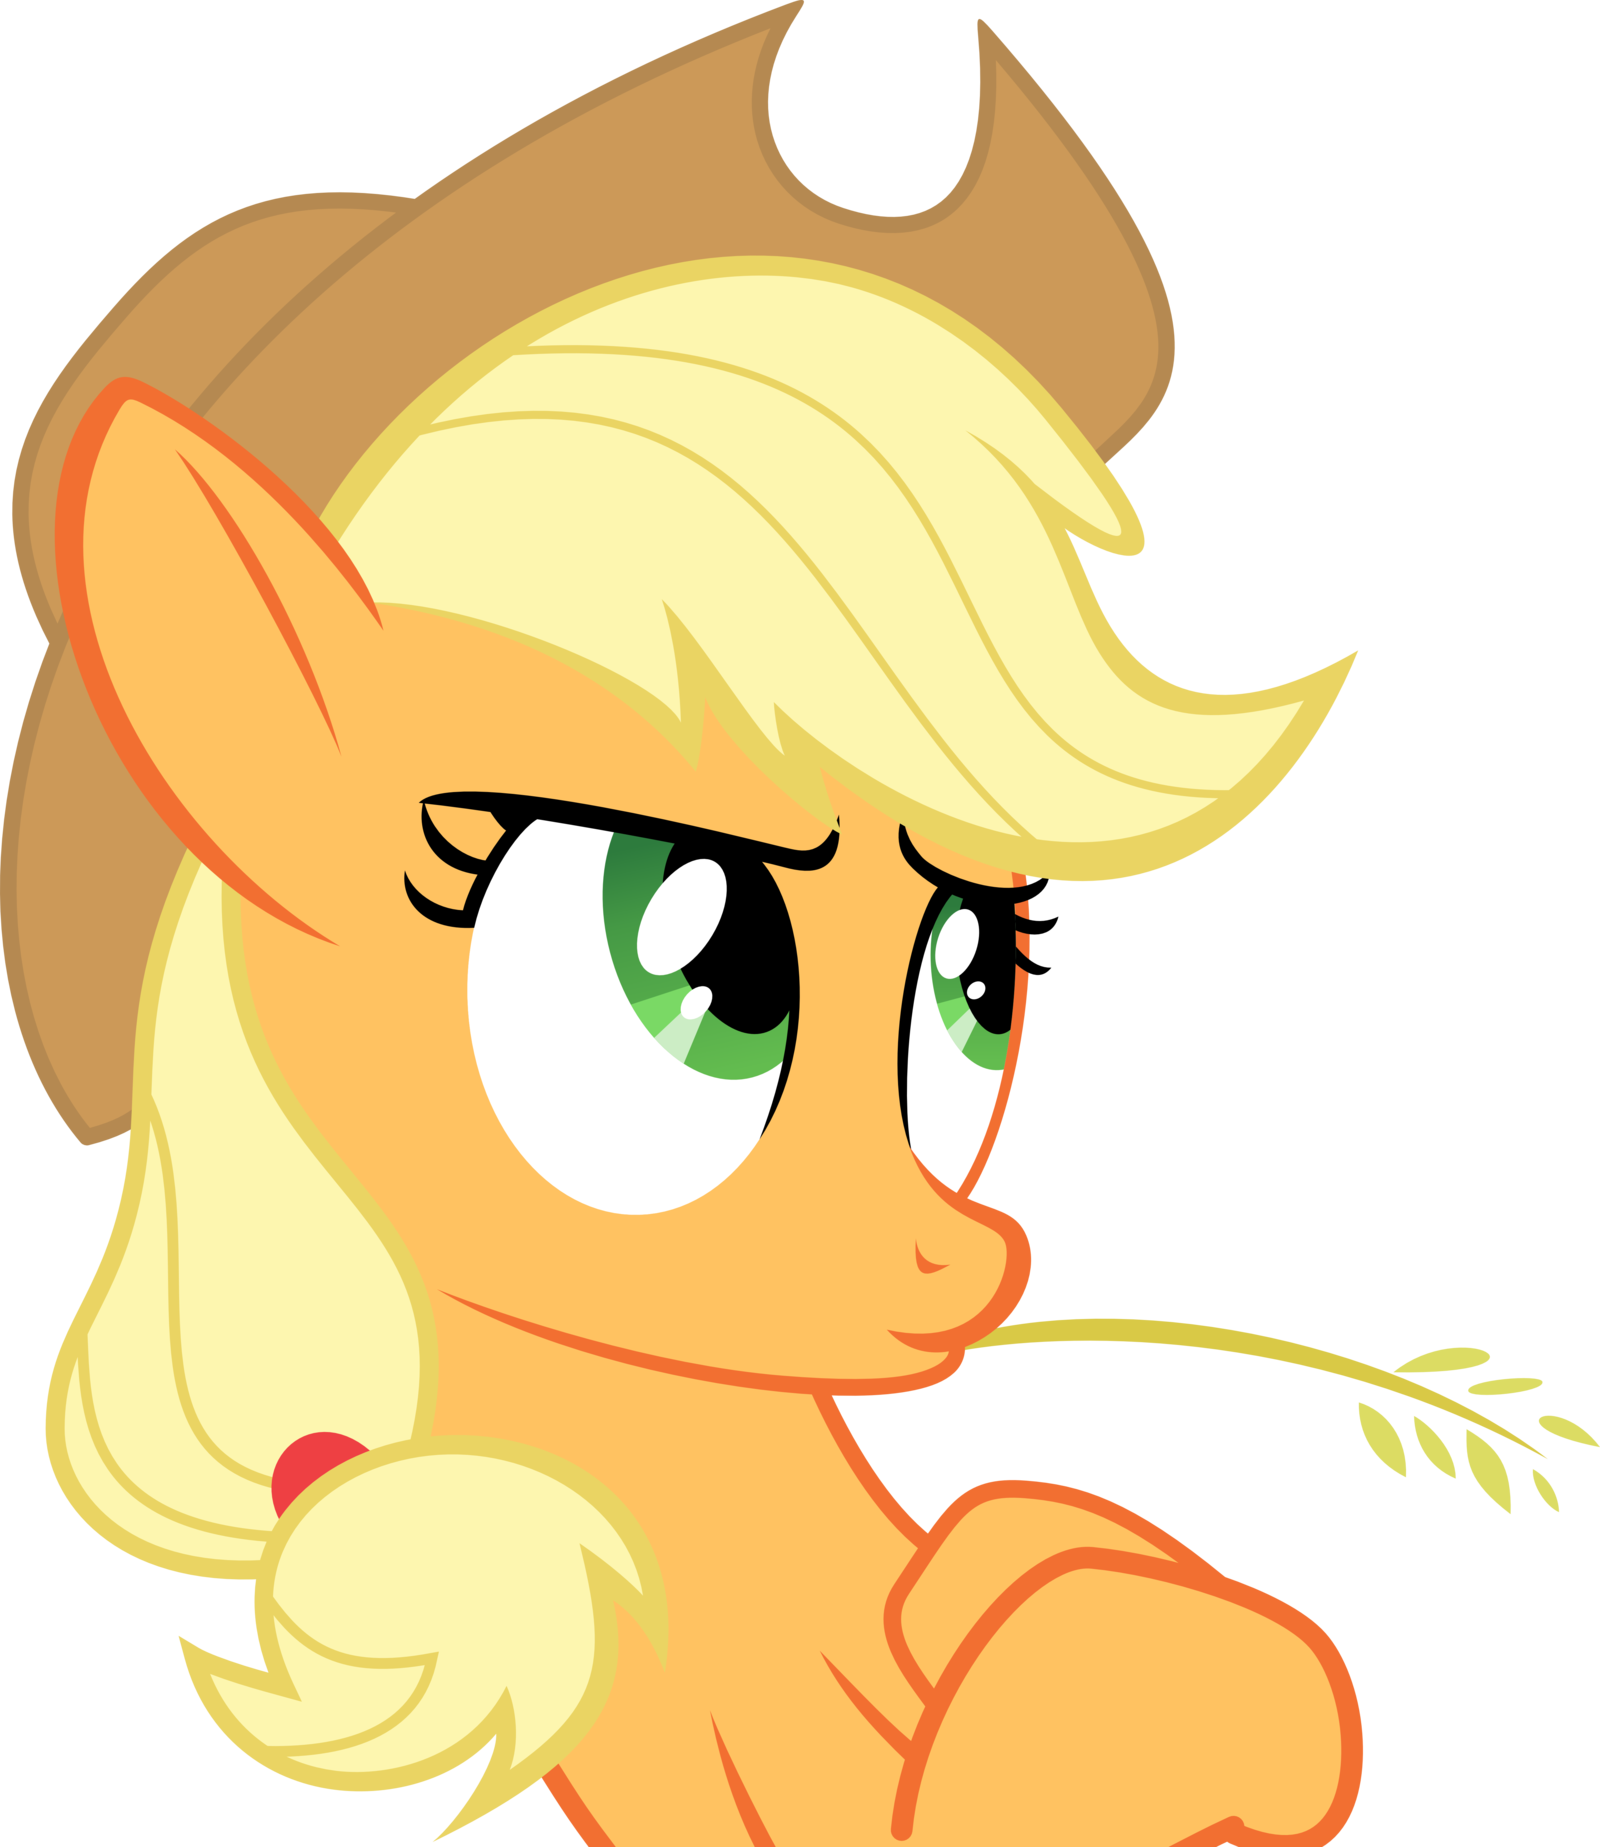 Applejack - Which zodiac type do you think she is? *Character analysis only please*